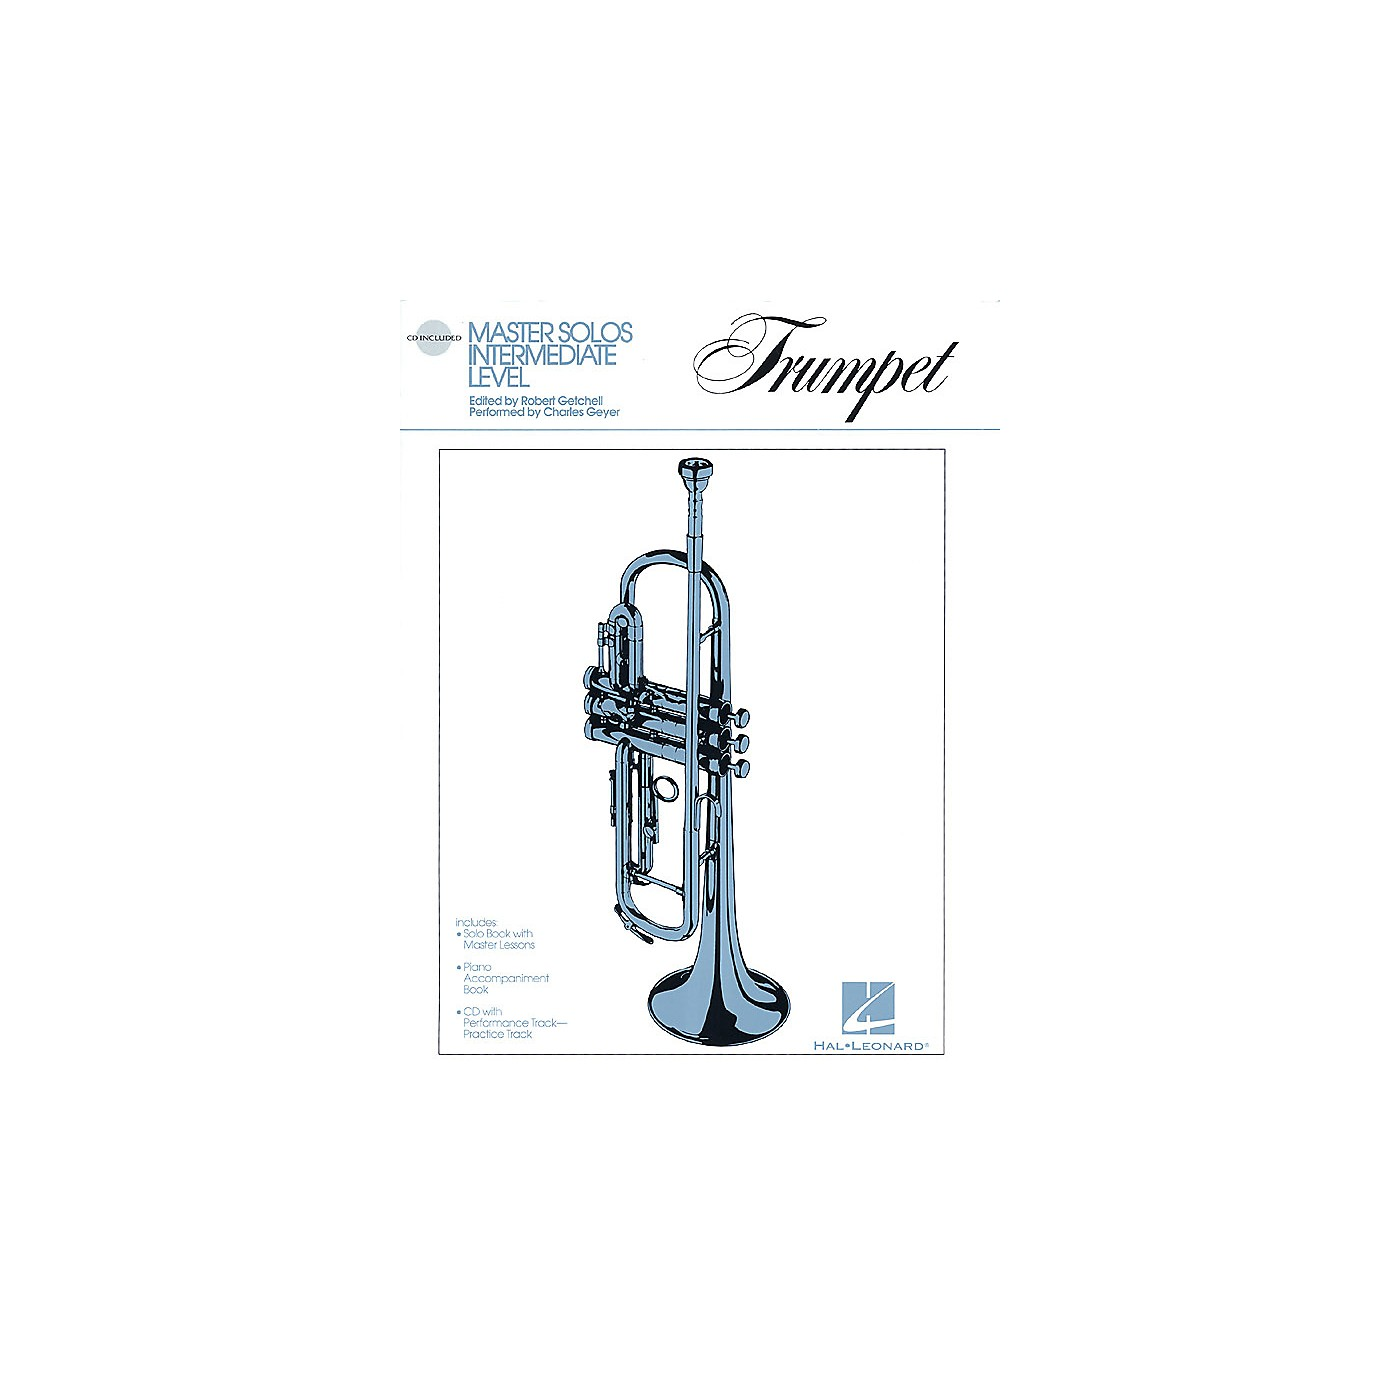 Hal Leonard Master Solos Intermediate Level - Trumpet (Book/CD Pack) Master Solos Series Softcover with CD thumbnail